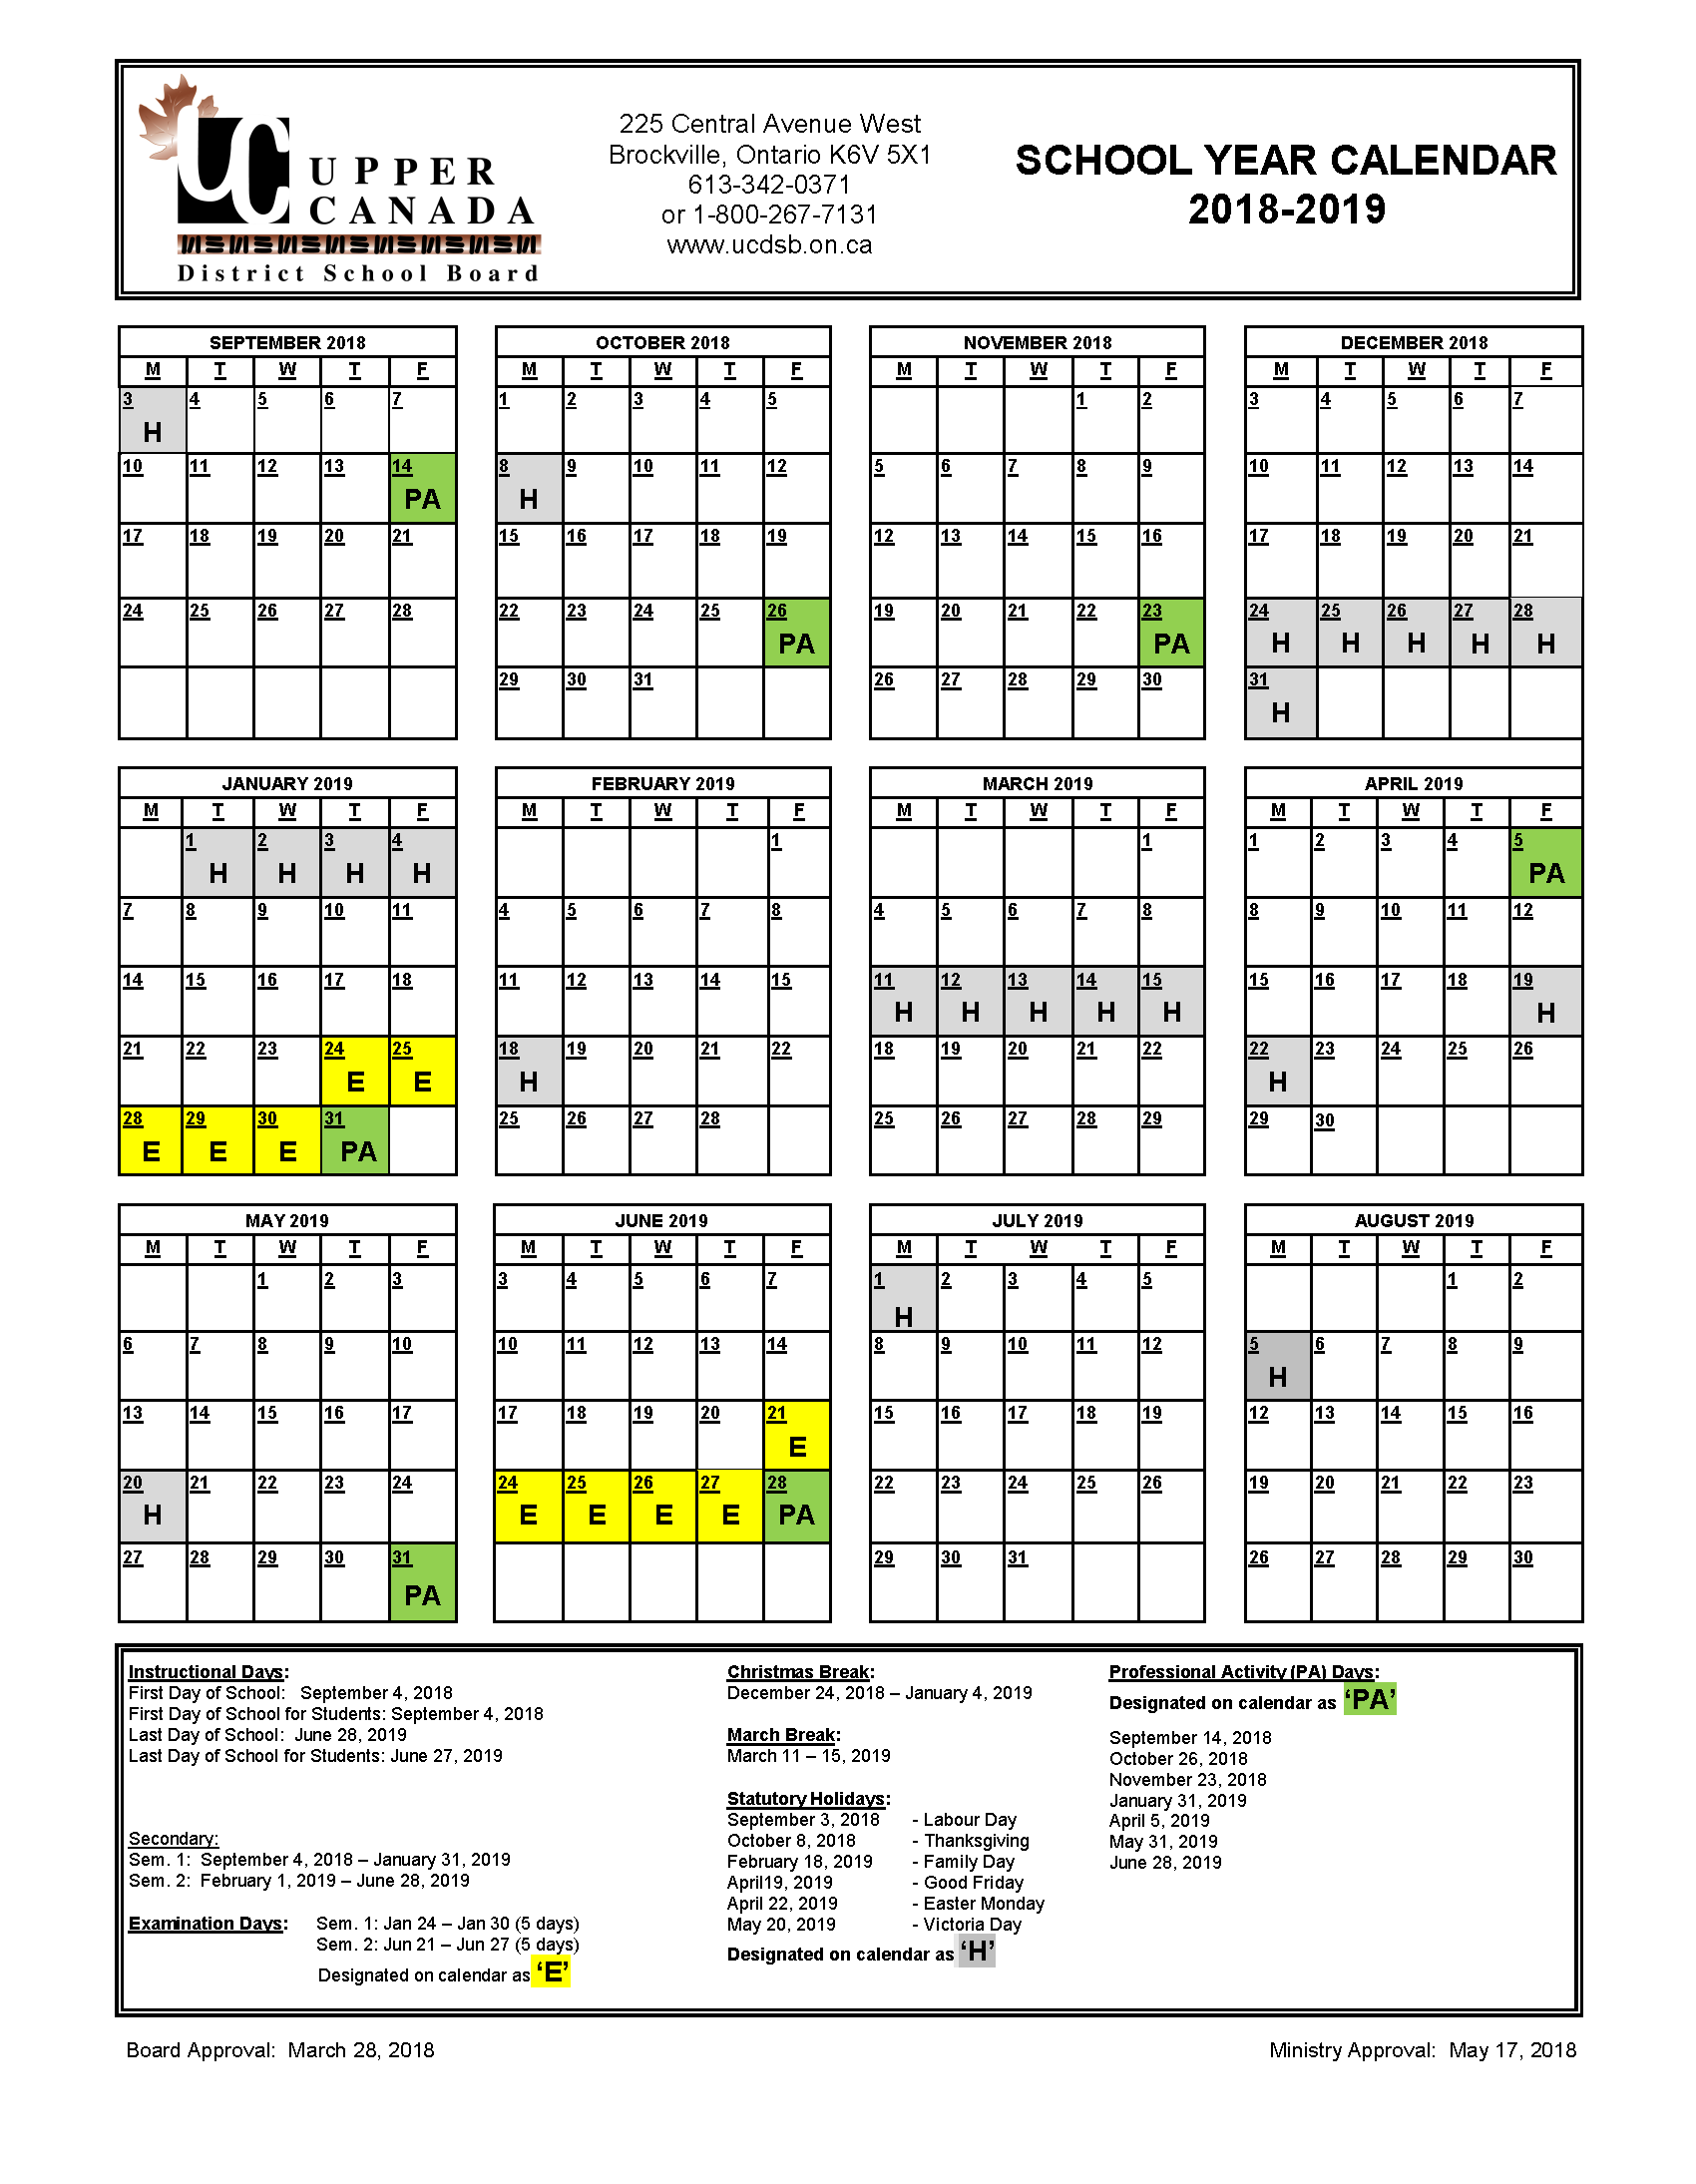 2019 School Year Calendar With 2018 Upper Canada District Board